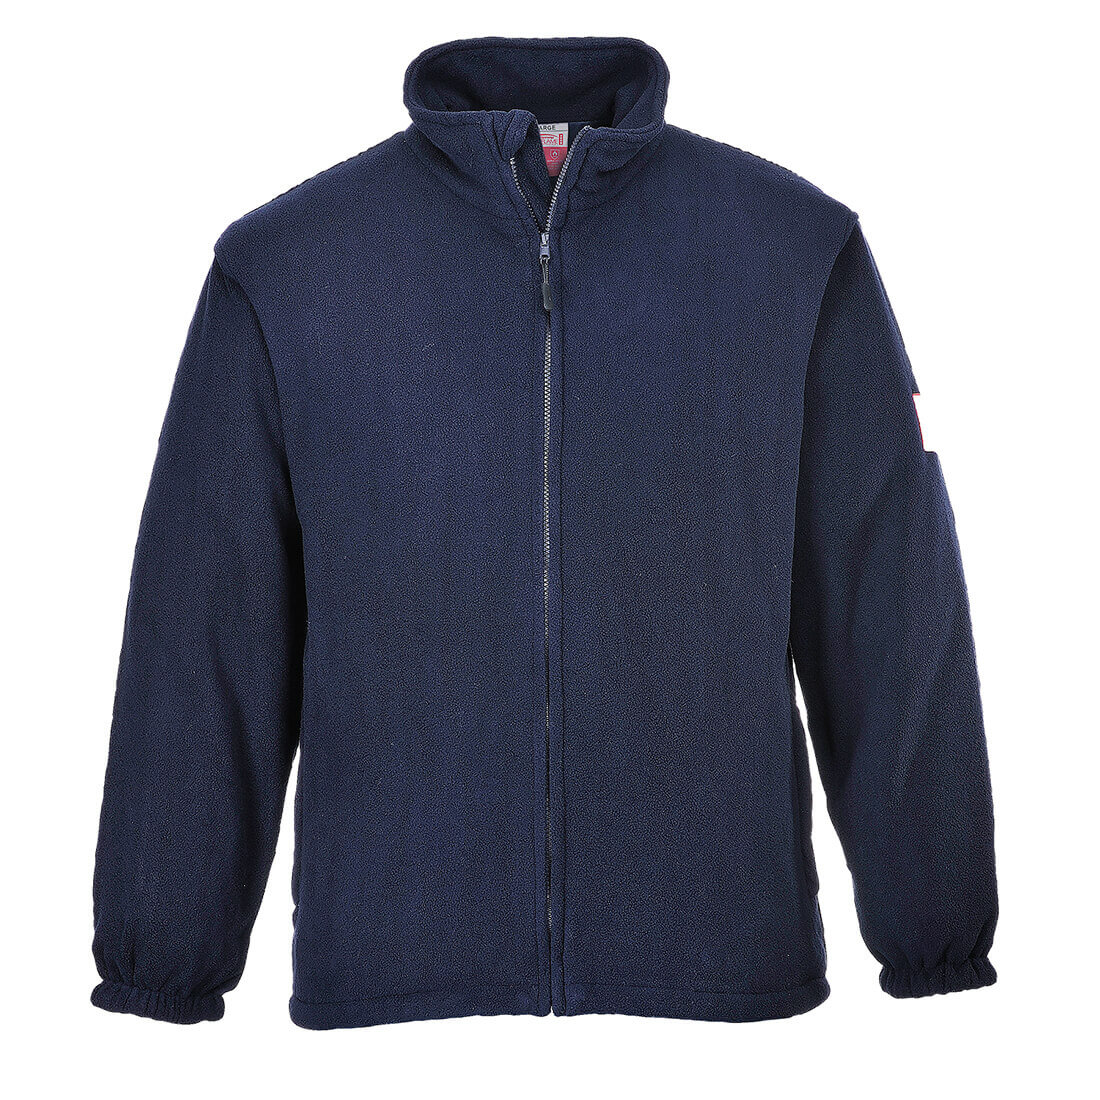 Image of Modaflame Flame Resistant Antistatic Fleece Navy 2XL